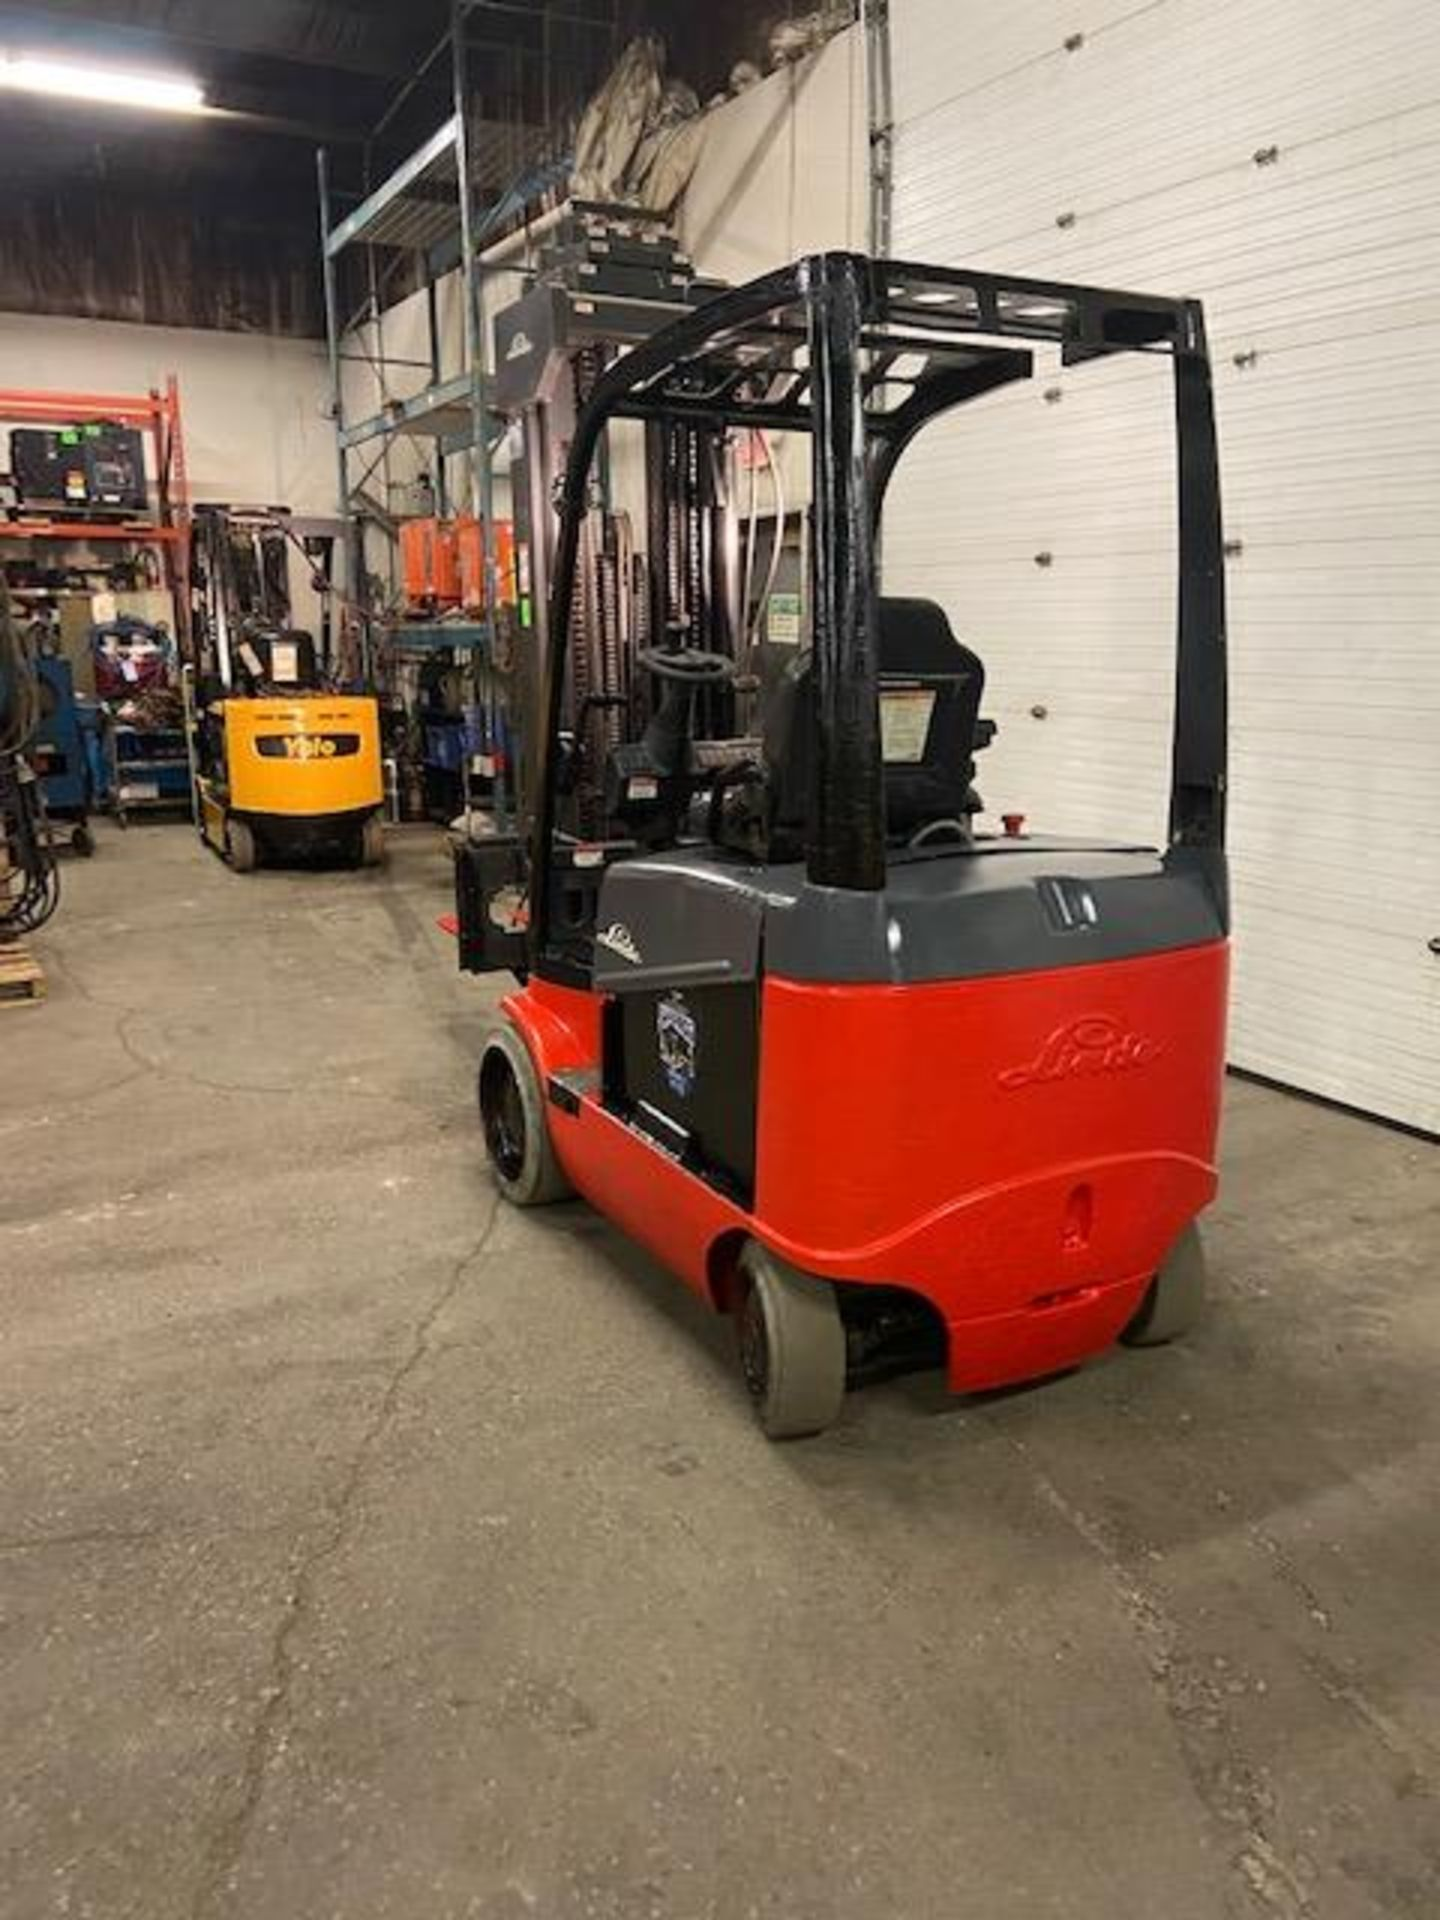 FREE CUSTOMS - LINDE 5000lbs Capacity Forklift 4-STAGE Mast - Electric unit with sideshift - Image 3 of 3